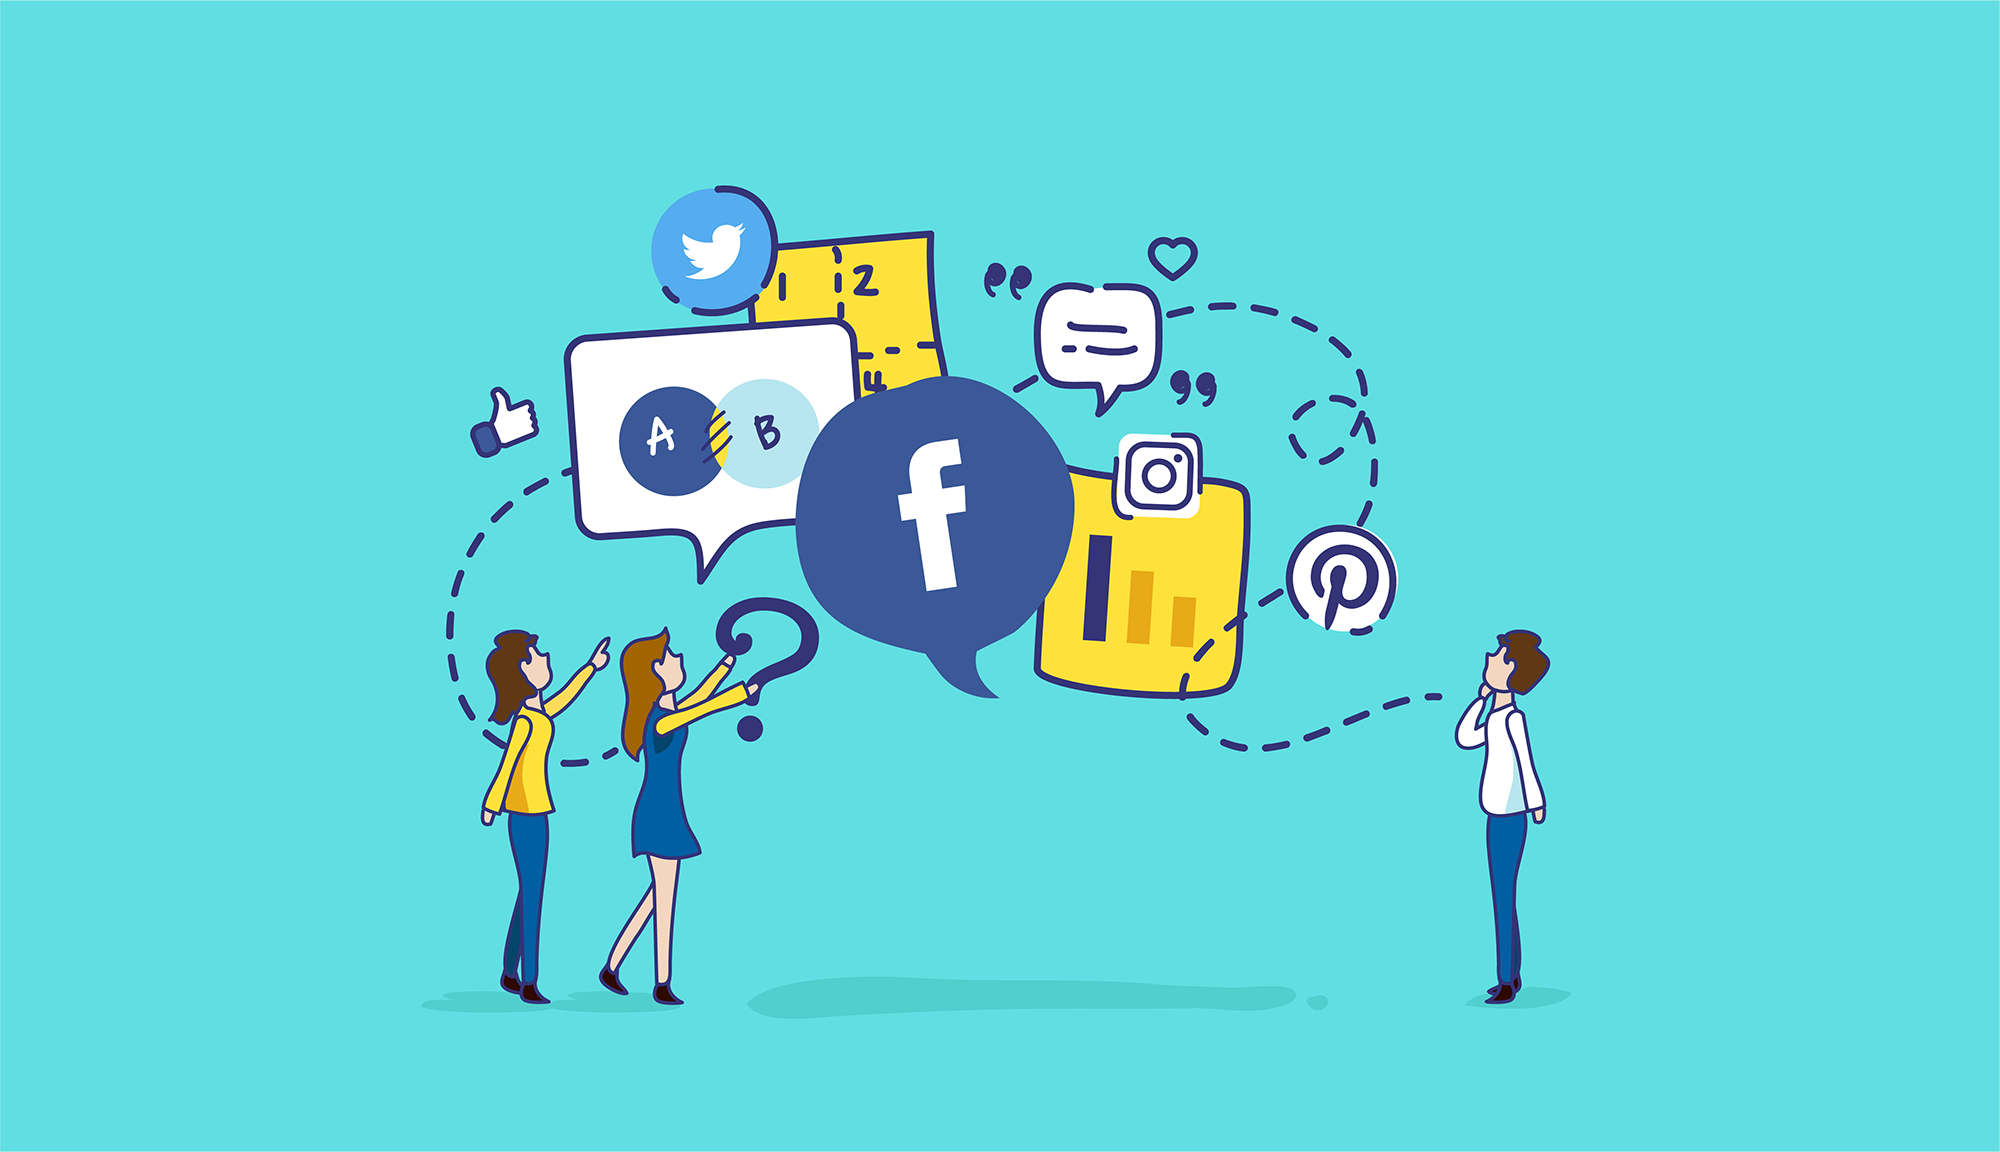 How-to-Create-Branded-Social-Media-Graphics-That-Will-Make-Followers-Stop-and-Engage